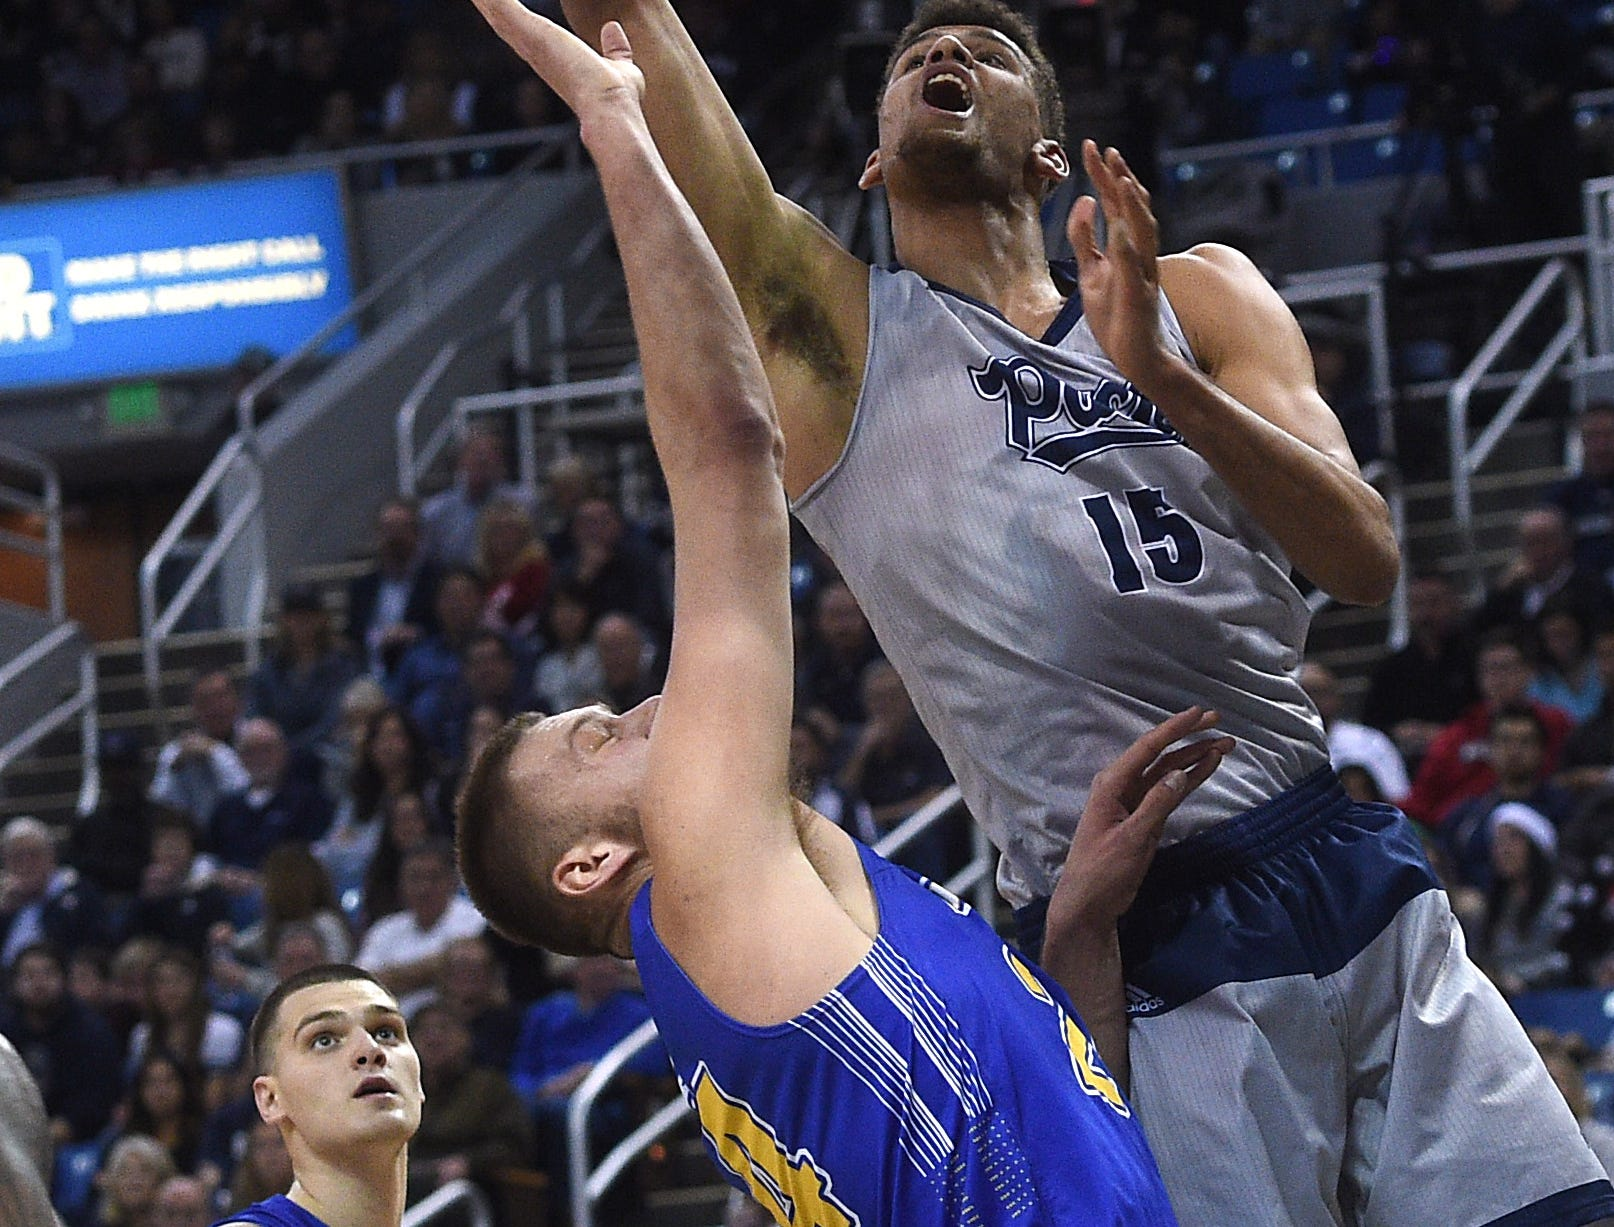 Nevada's Trey Porter (15) drives to the basket while taking on South Dakota State during their basketball game at Lawlor Events Center in Reno on Dec. 15, 2018.